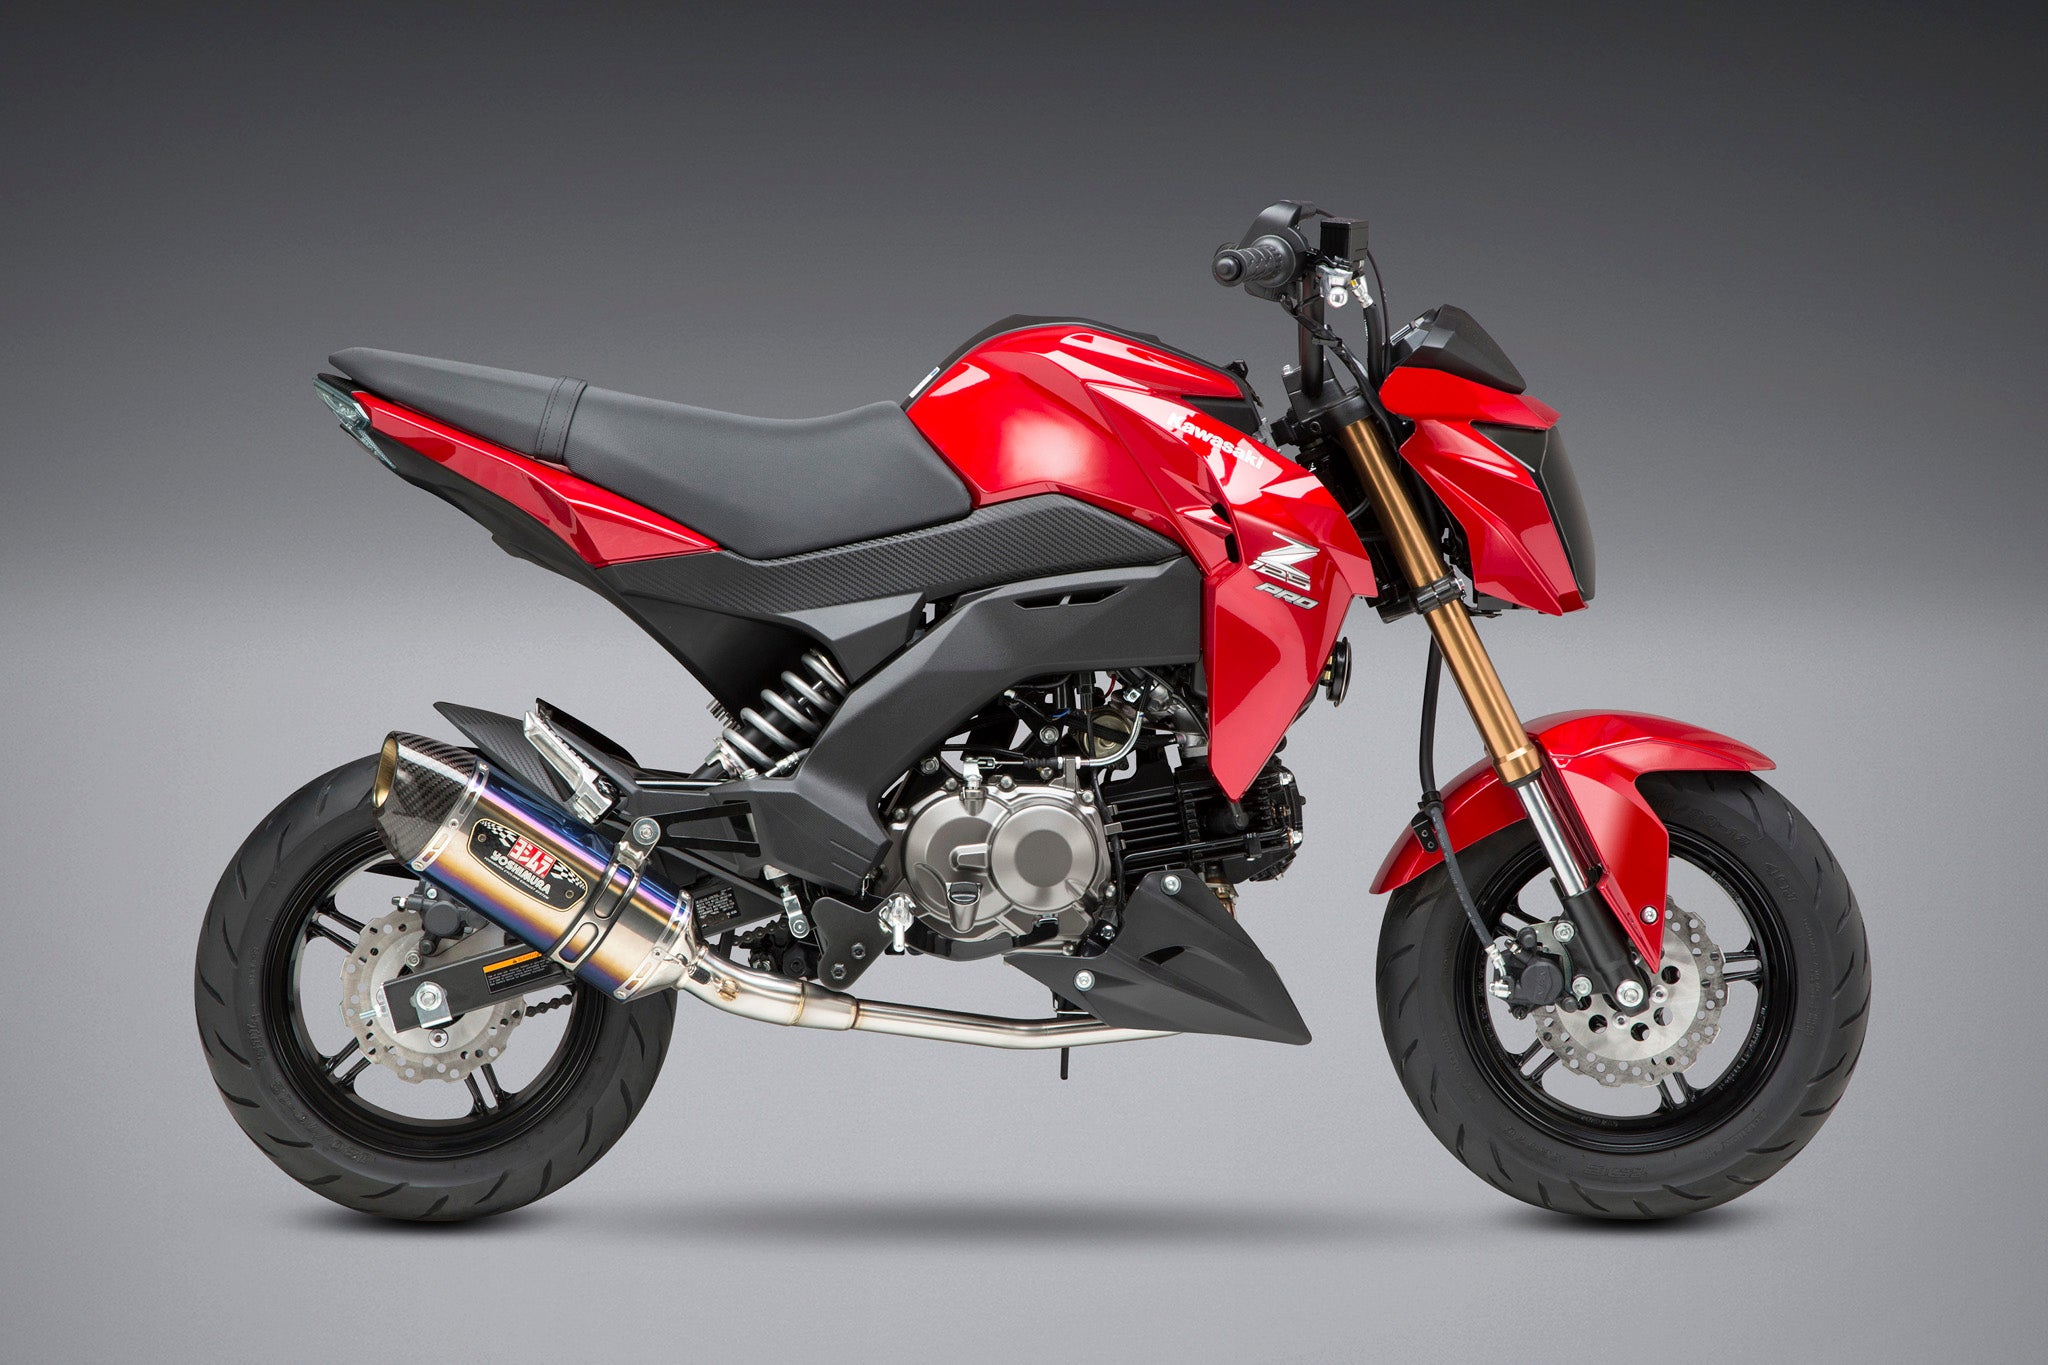 Lifetime Product Support Services – Yoshimura R&D of America